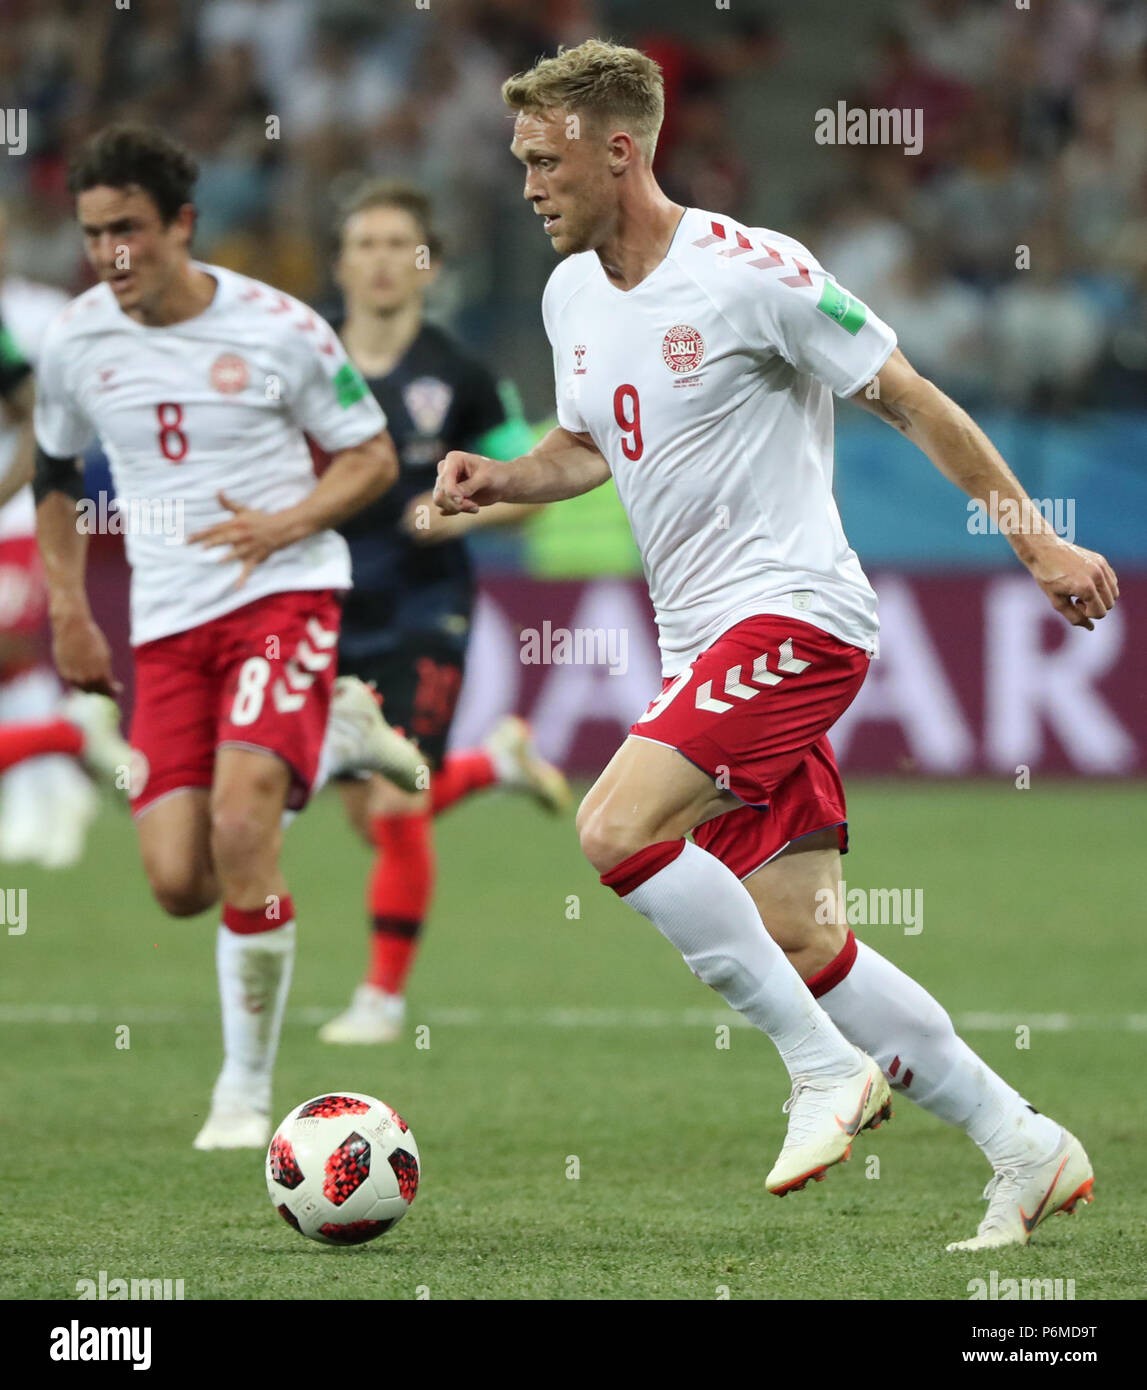 Nizhny Novgorod, Russia. 1st July, 2018. Nicolai Jorgensen (R) of Denmark competes during the 2018 FIFA World Cup round of 16 match between Croatia and Denmark in Nizhny Novgorod, Russia, July 1, 2018. Credit: Bai Xueqi/Xinhua/Alamy Live News - Stock Image